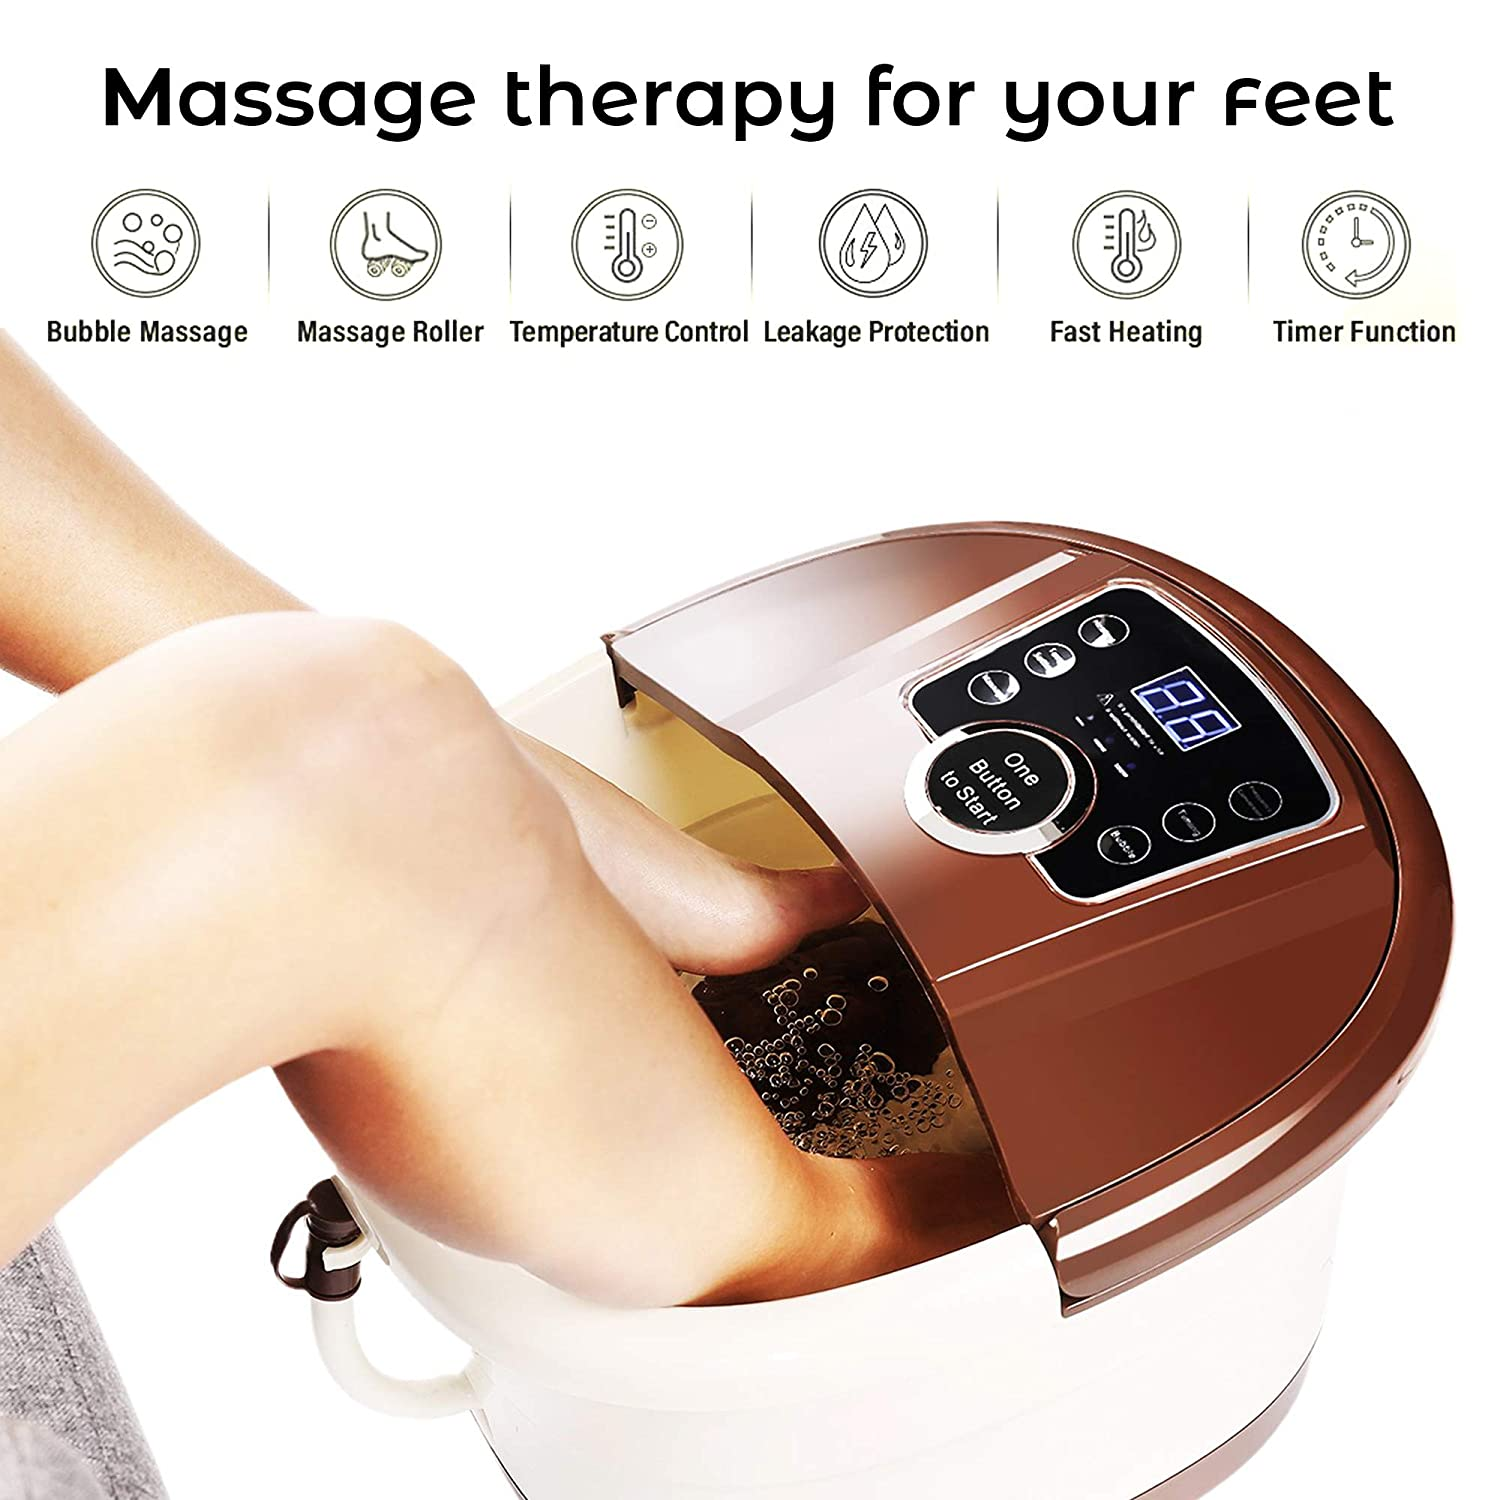 Foot Spa Massager with Heat and Jets and Motorized Rollers – Heating, Rolling Massage, Shiatsu Feet Massage – Home Spa Bath